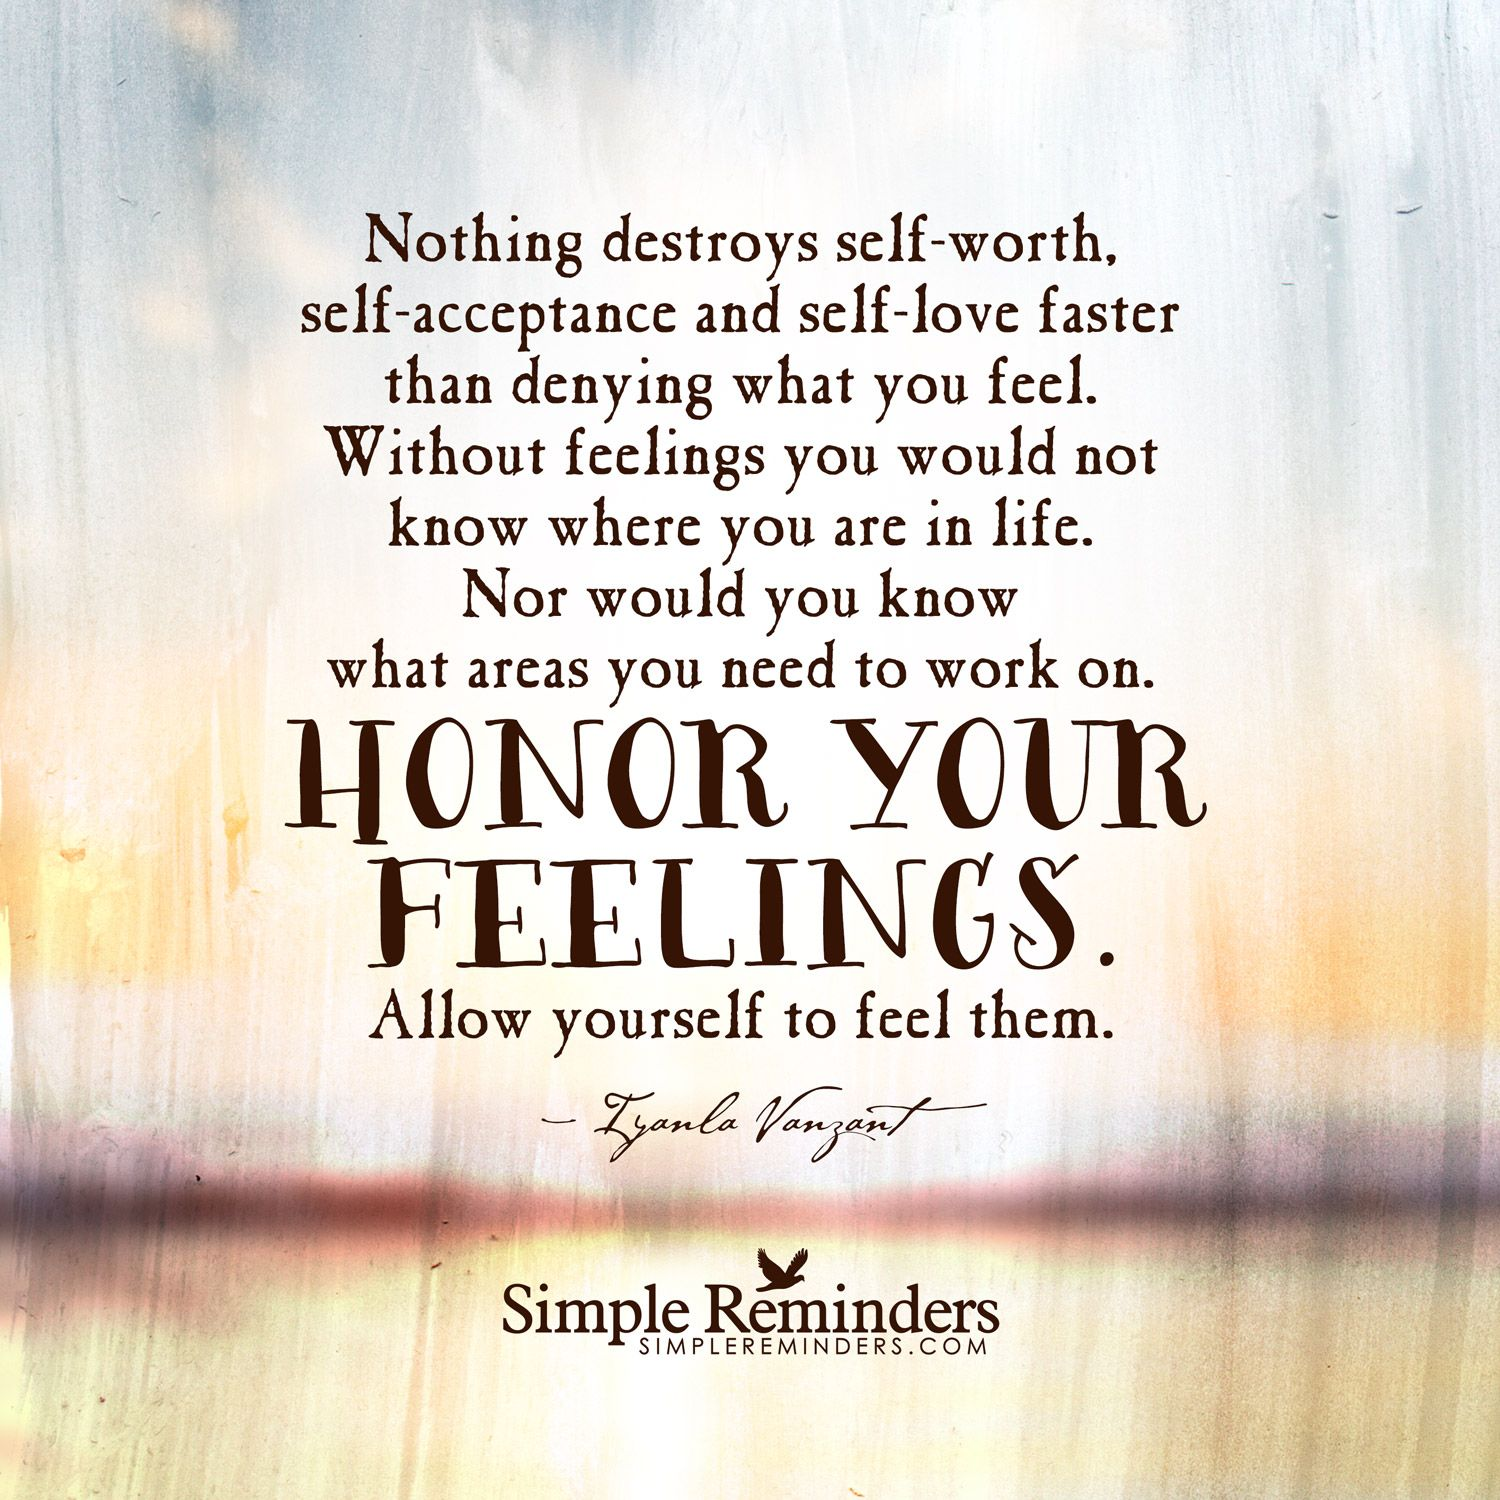 Nothing destroys selfworth, selfacceptance and selflove